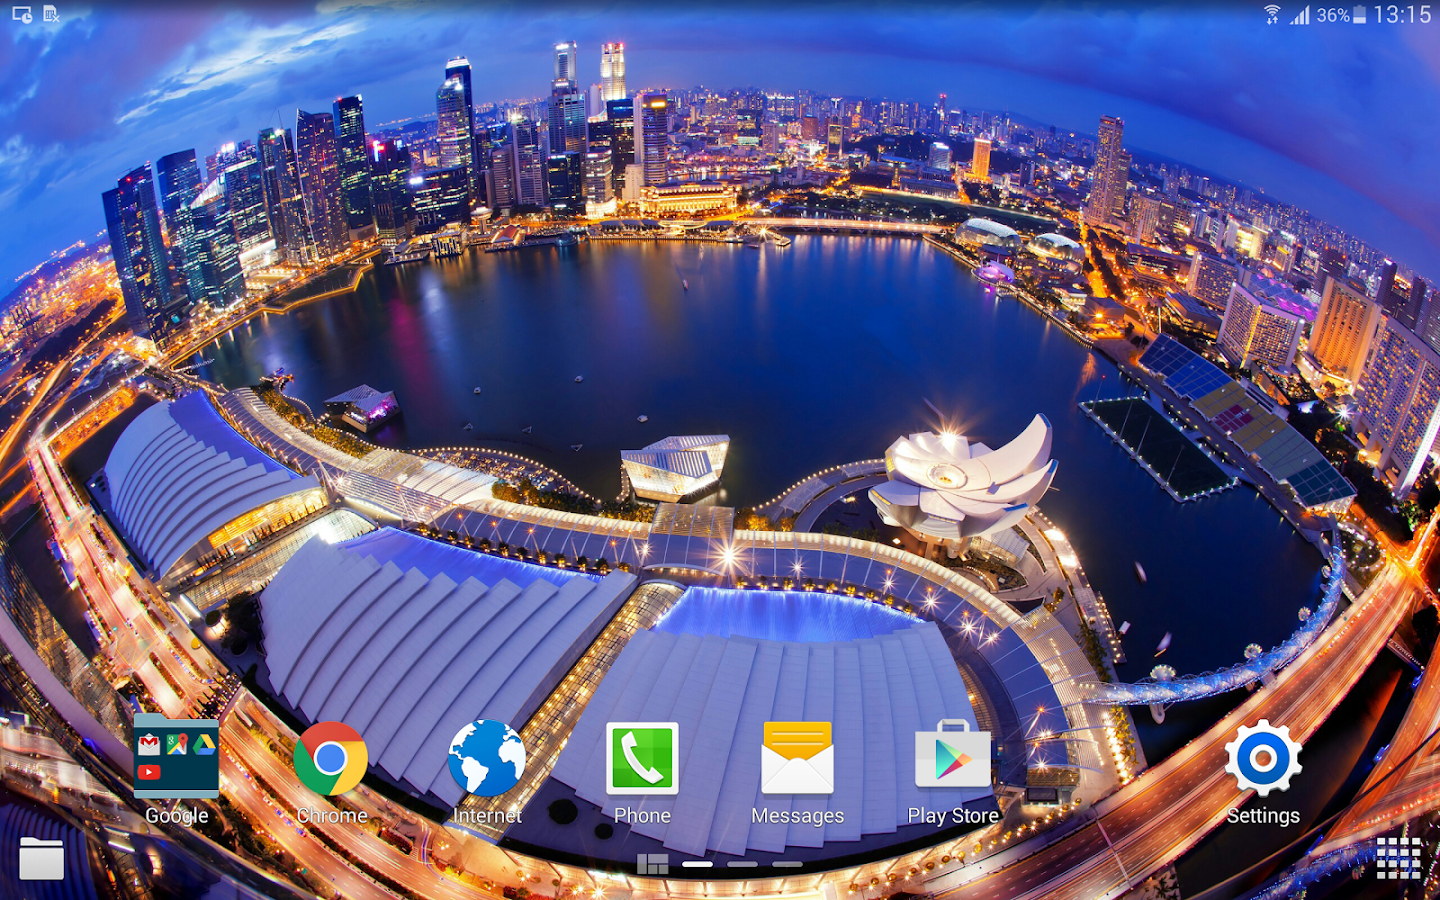 Night City Wallpapers 4k Android Apps On Google Play